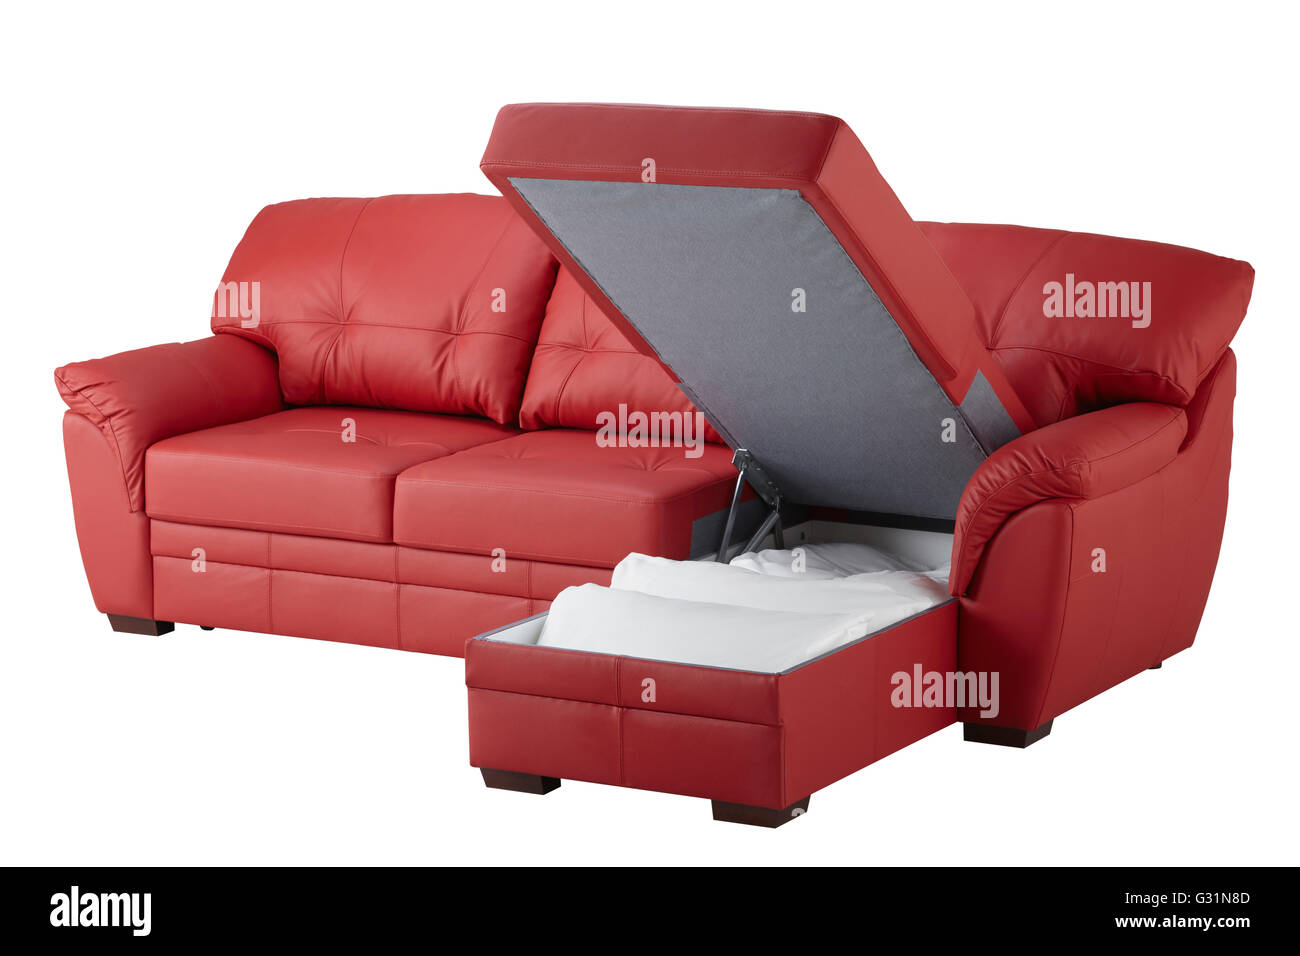 https://c8.alamy.com/comp/G31N8D/red-leather-corner-sofa-bed-with-storage-isolated-on-white-include-G31N8D.jpg